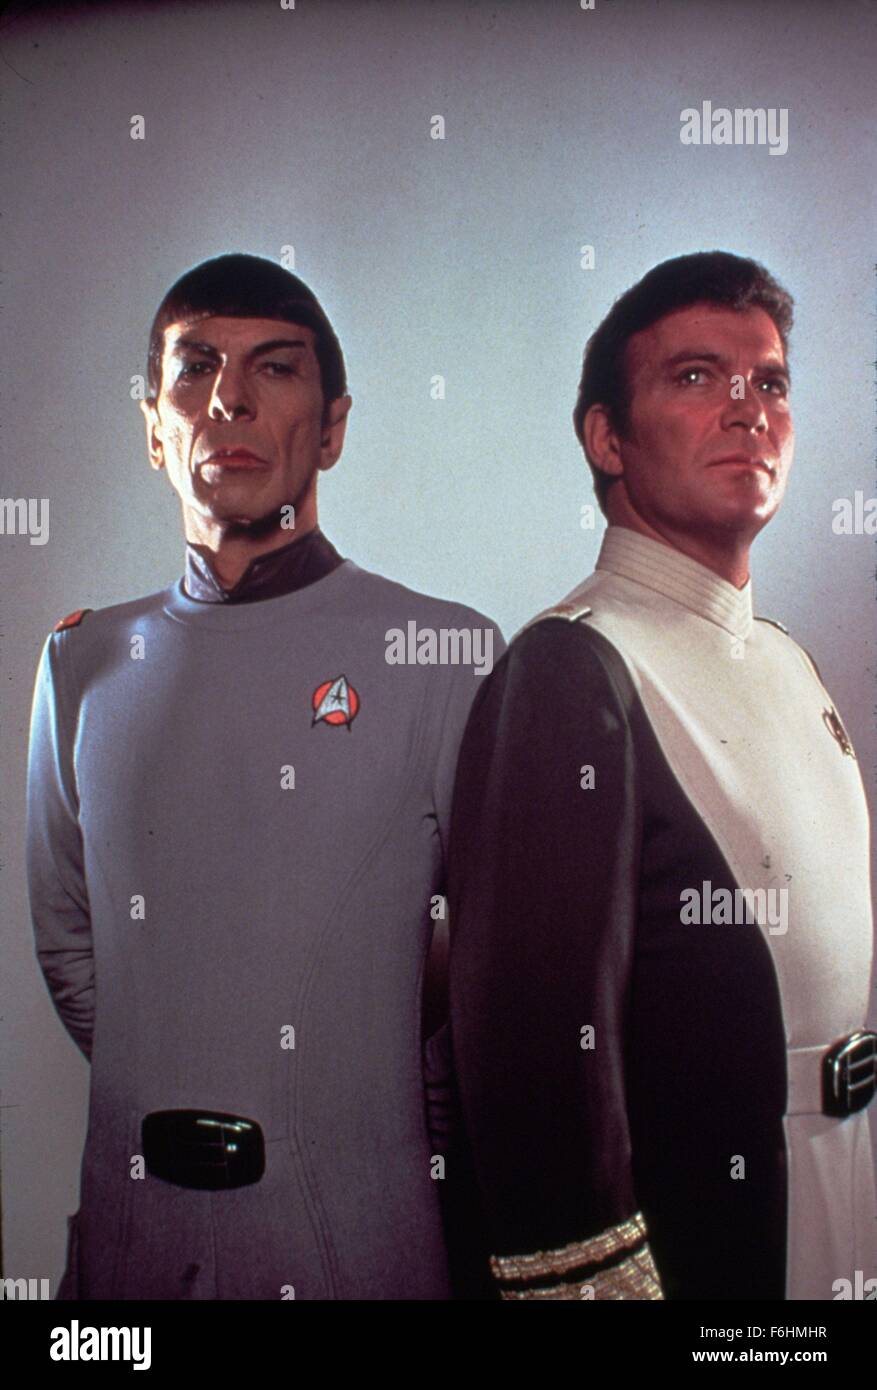 1986, Film Title: STAR TREK IV: THE VOYAGE HOME, Director: LEONARD NIMOY, Studio: PARAMOUNT, Pictured: LEONARD NIMOY. Stock Photo